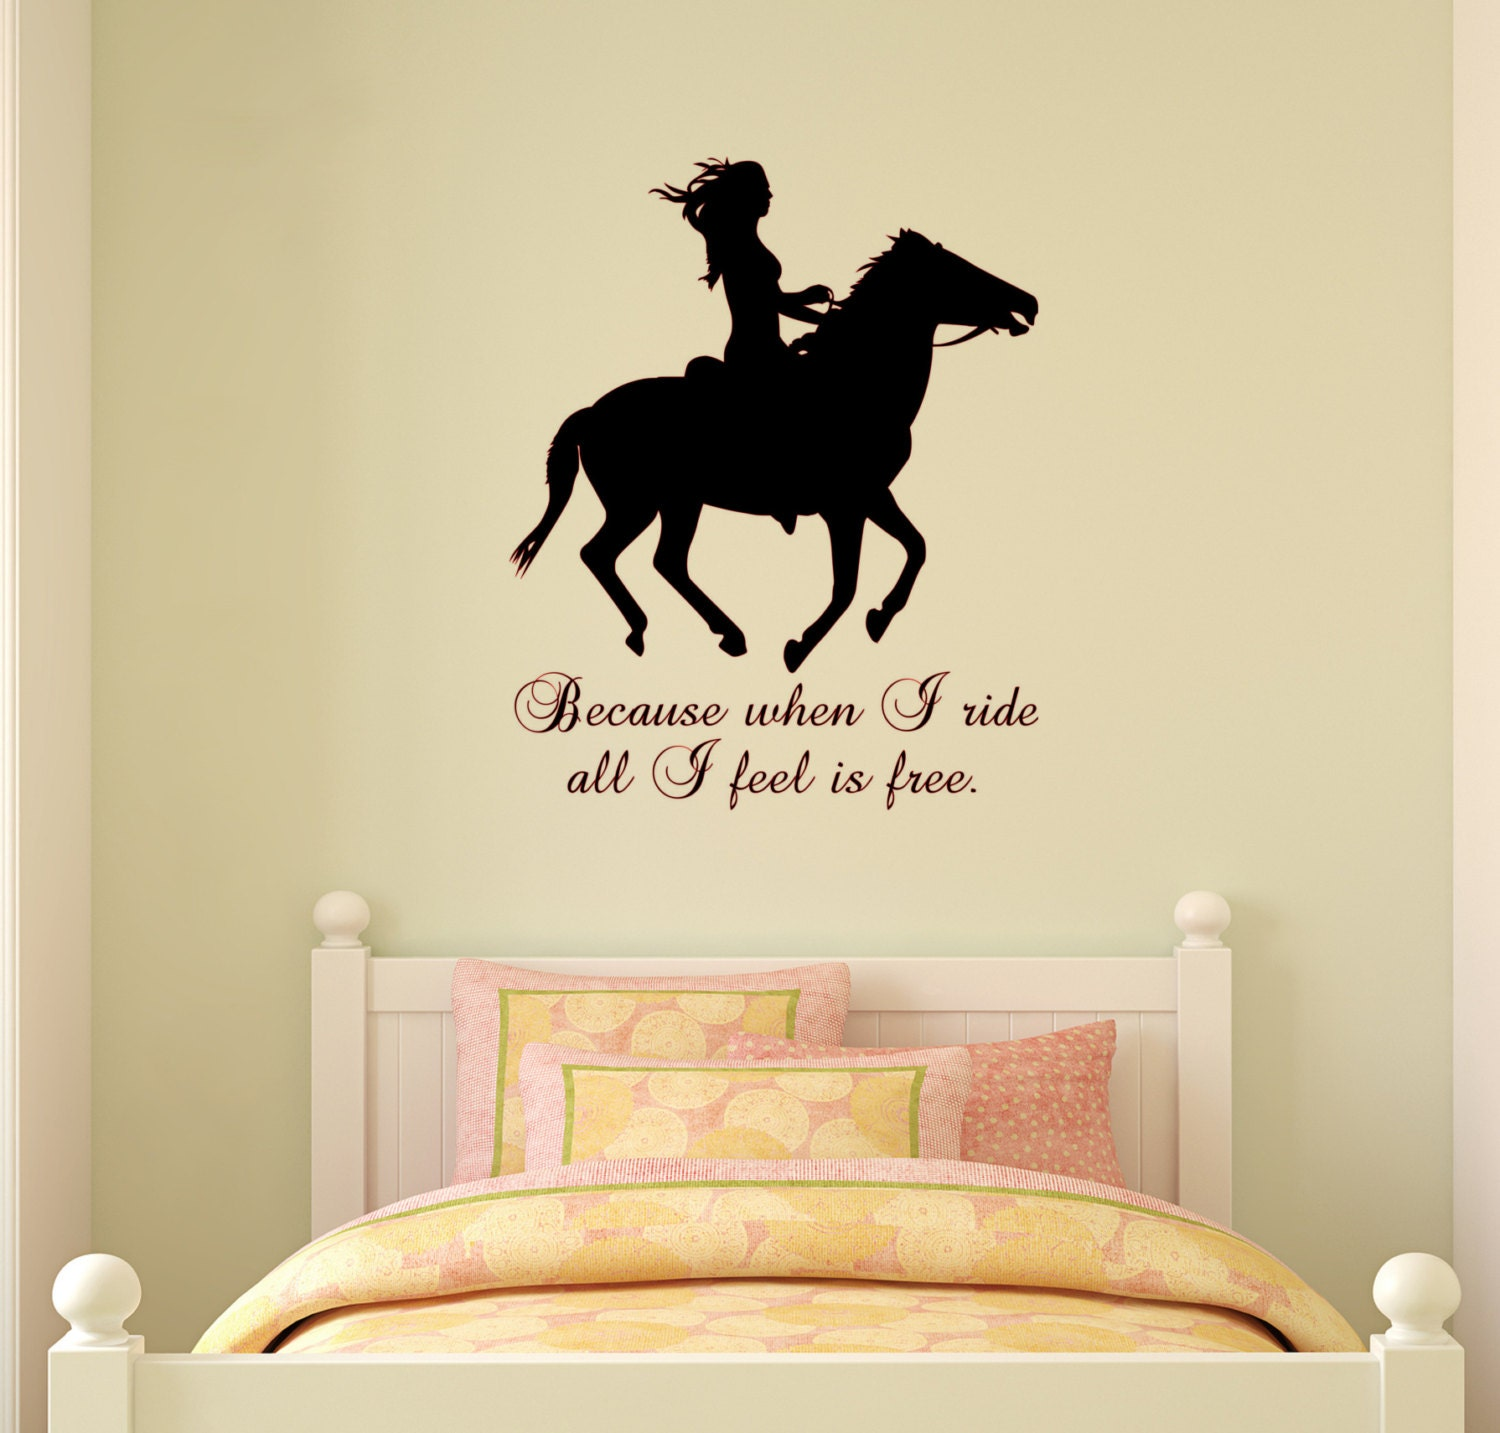 horse wall decal horse quote sticker wall words girls teen. Black Bedroom Furniture Sets. Home Design Ideas